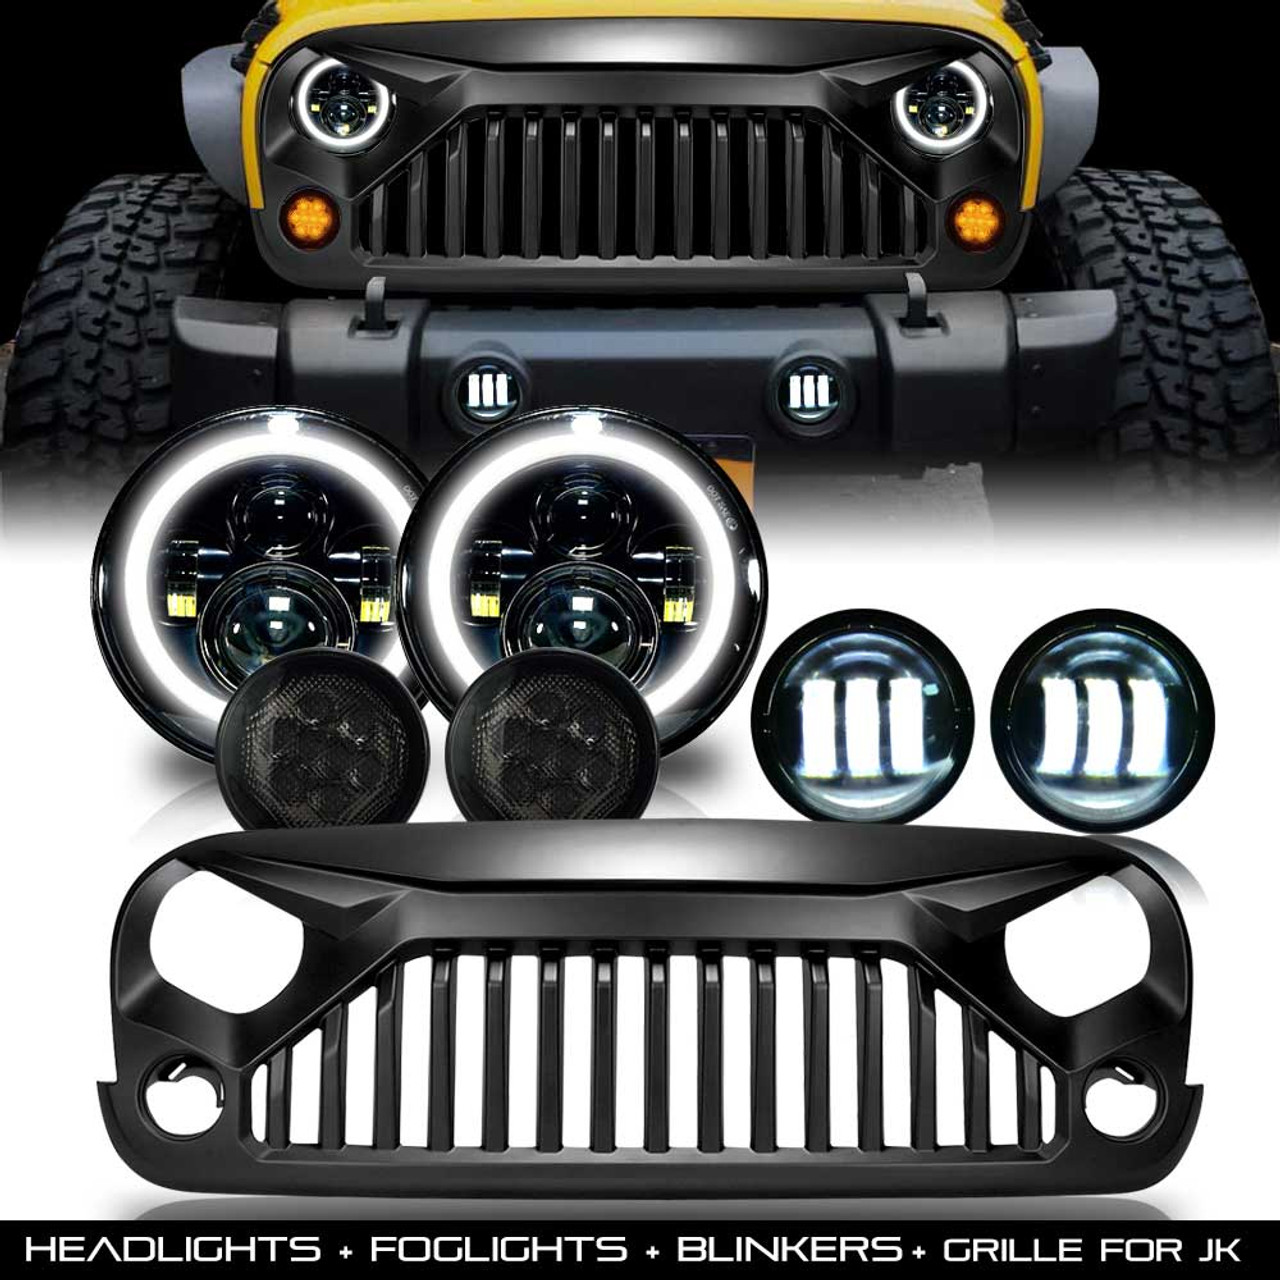 Jeep Wrangler Fog Lights >> Combo Grill Headlights Blinkers Fog Lights For Jeep Wrangler Jk 2007 2017